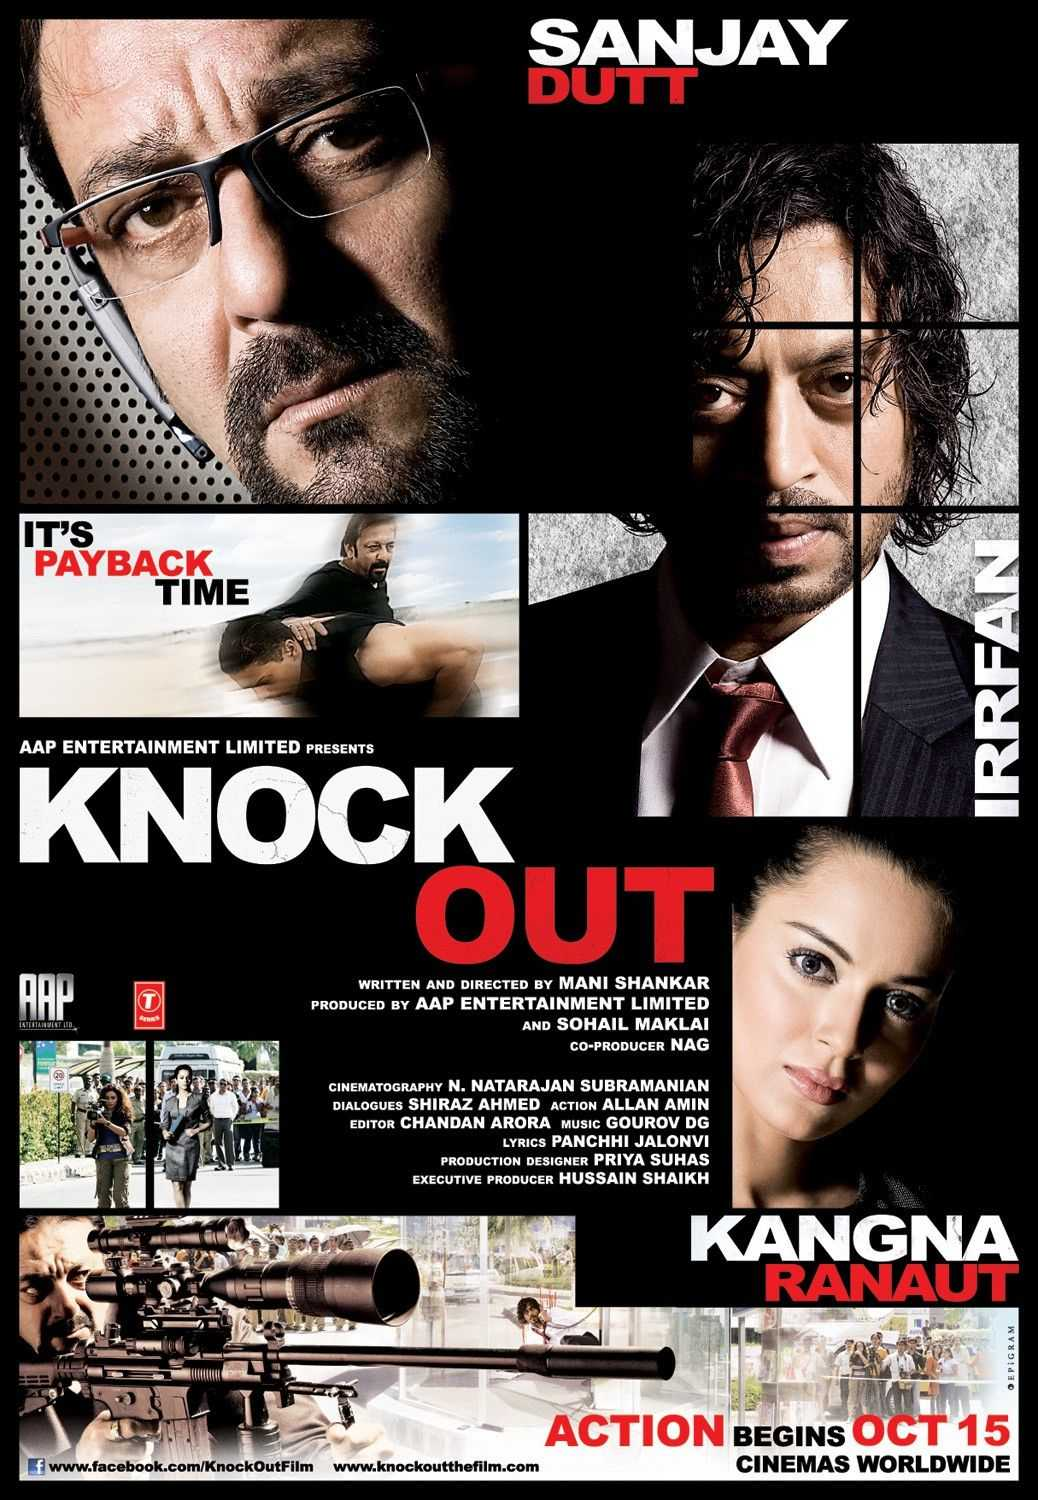 Knock Out (2010) - Review, Star Cast, News, Photos